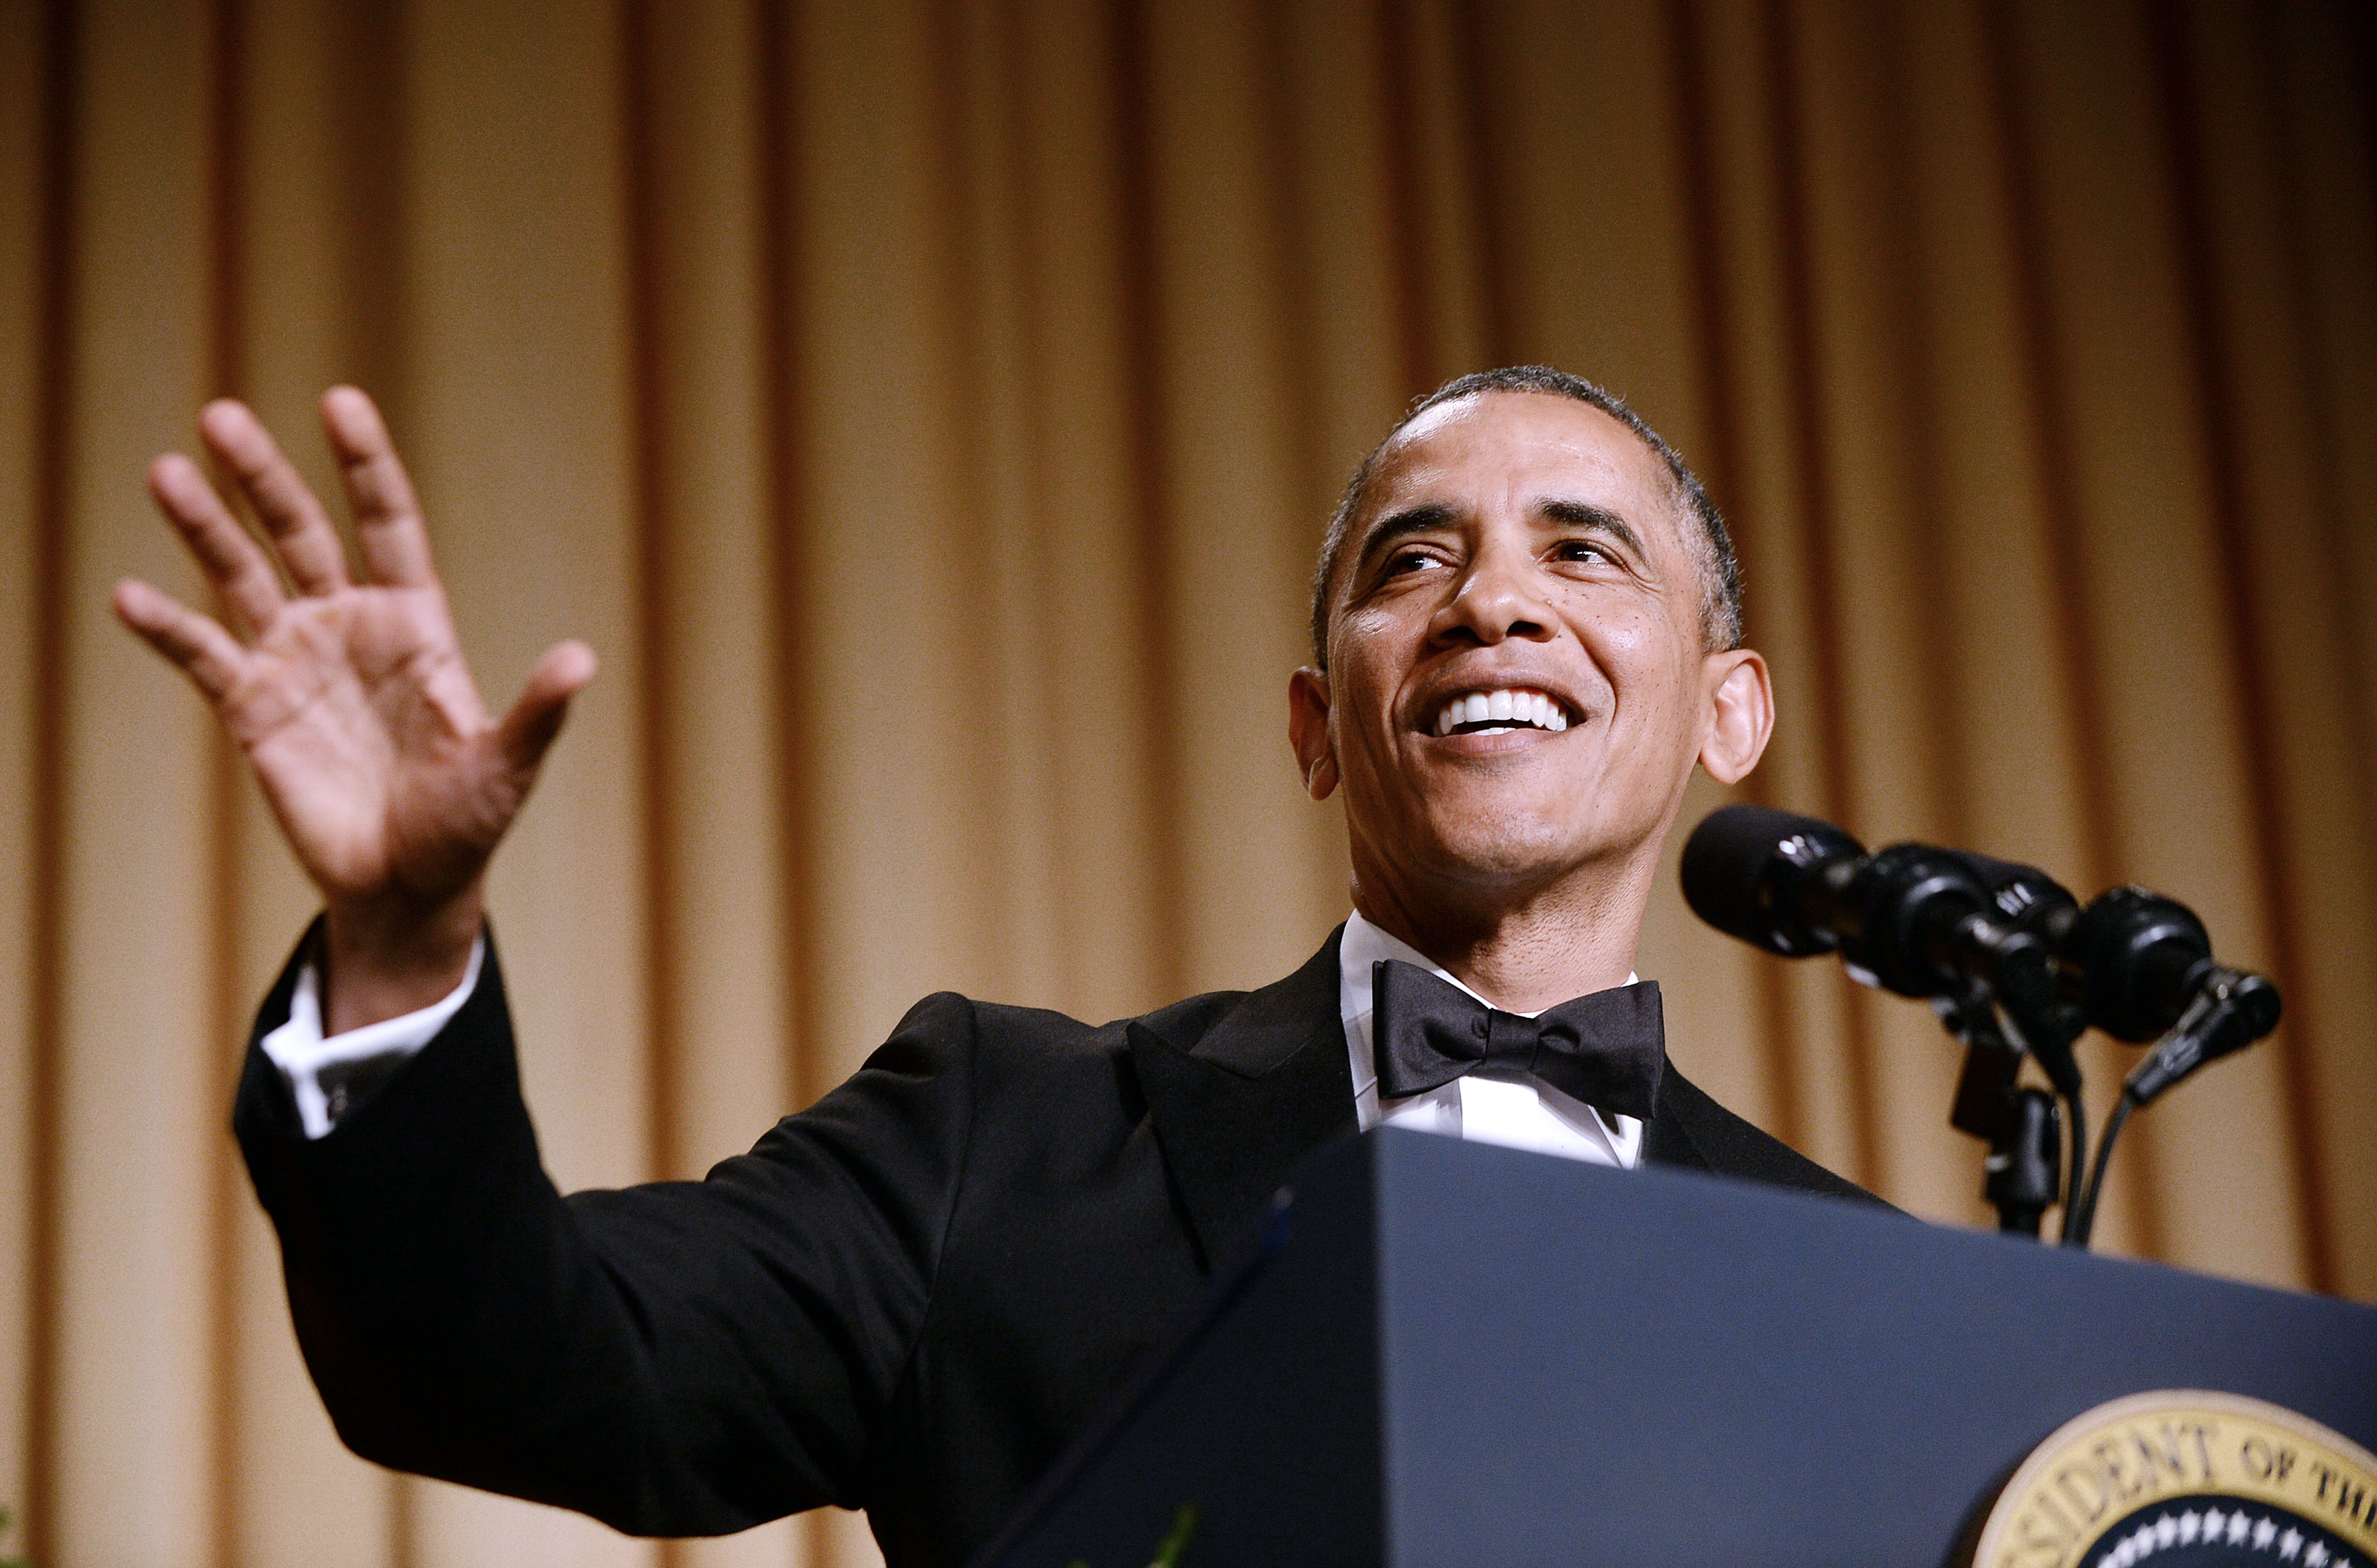 WASHINGTON, DC - MAY 3: (AFP OUT)  US President Barack Obama speaks at the annual White House Correspondent's Association Gala at the Washington Hilton hotel May 3, 2014 in Washington, D.C. The dinner is an annual event attended by journalists, politicians and celebrities. (Photo by Olivier Douliery-Pool/Getty Images)